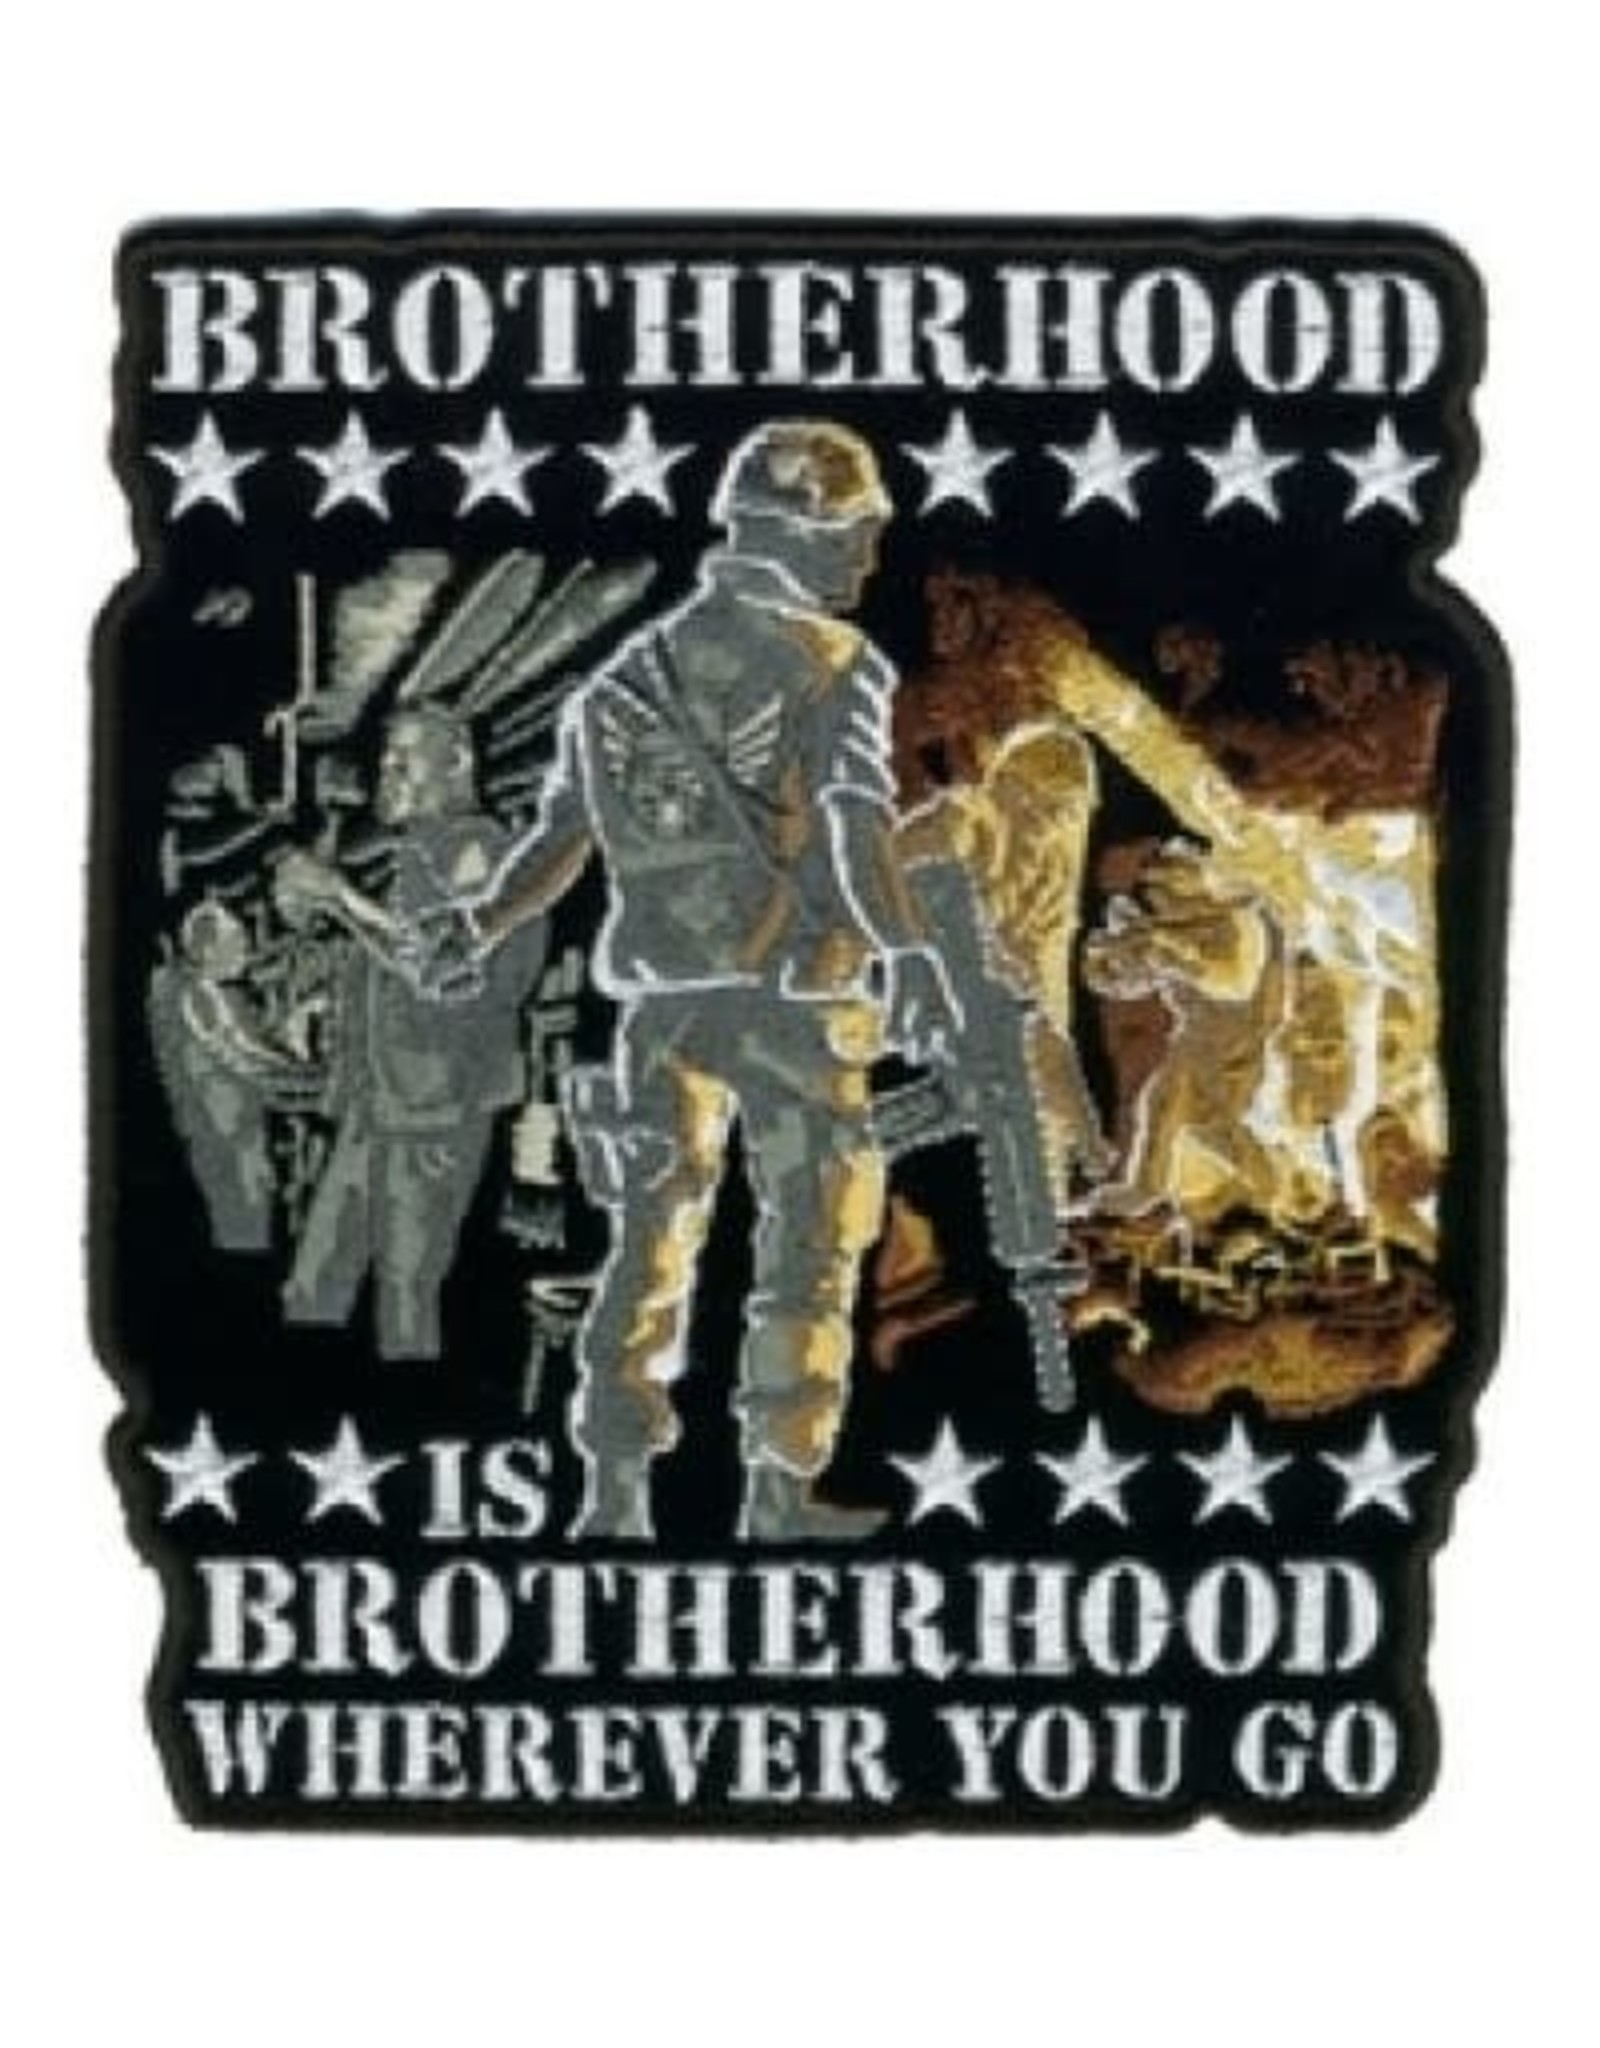 "MidMil Embroidered Brotherhood is Brotherhood Wherever you go Patch 10"" wide x 11.2"" high"